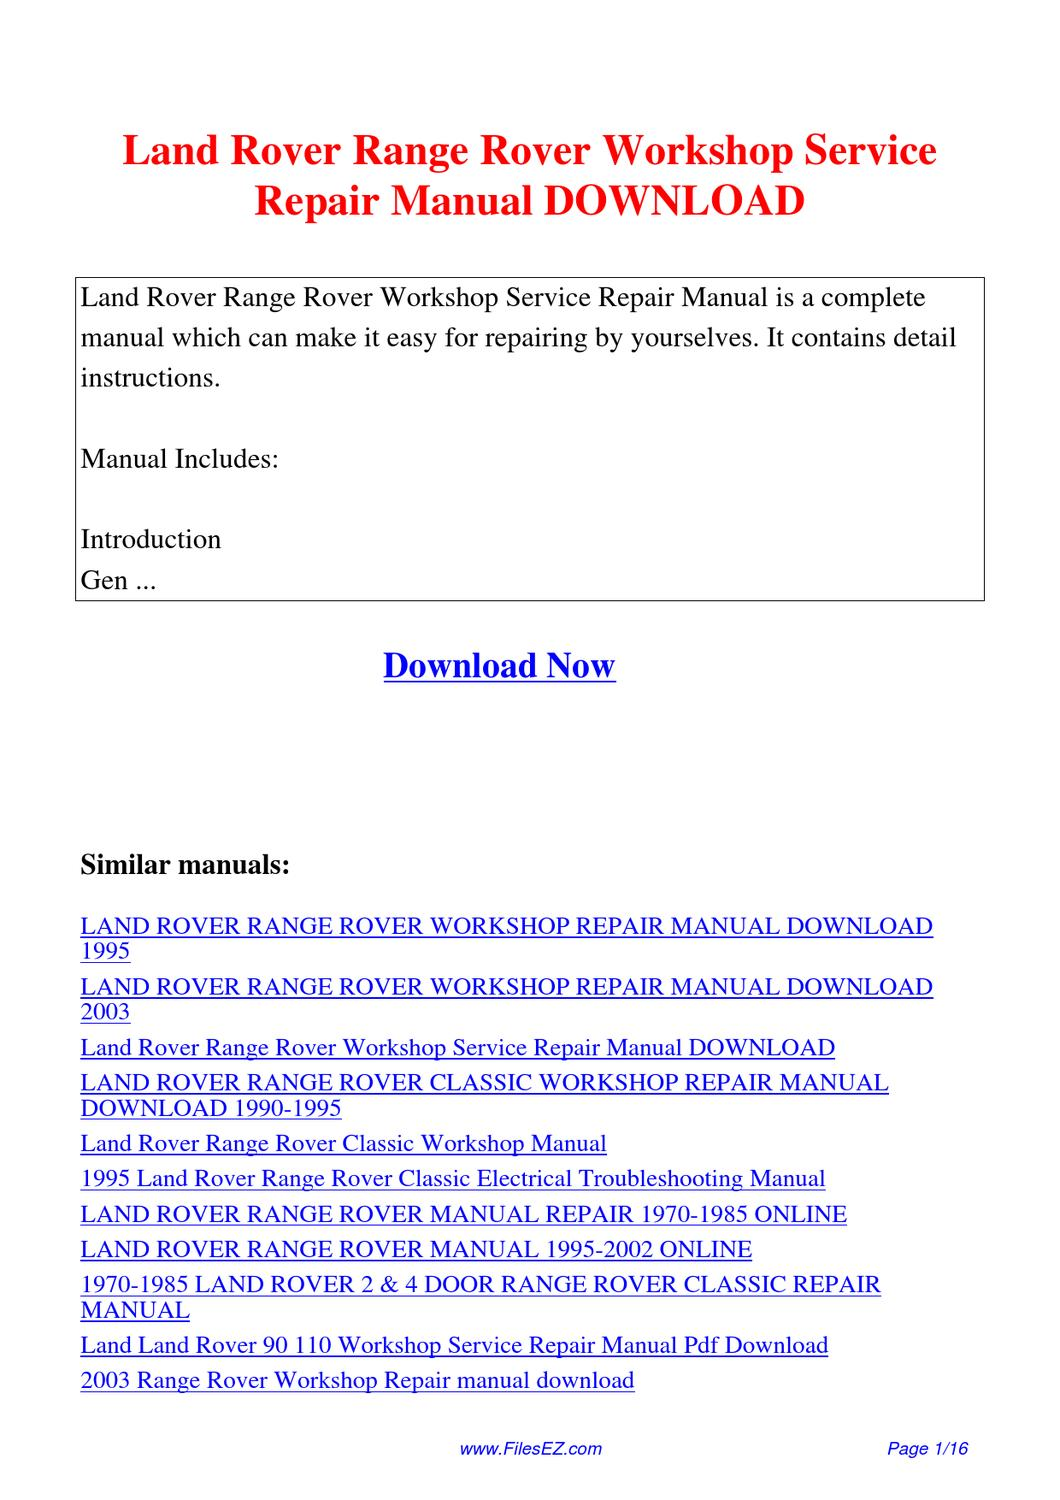 Land_Rover_Range_Rover_Workshop_Service_Repair_Manual by Yang Rong - issuu